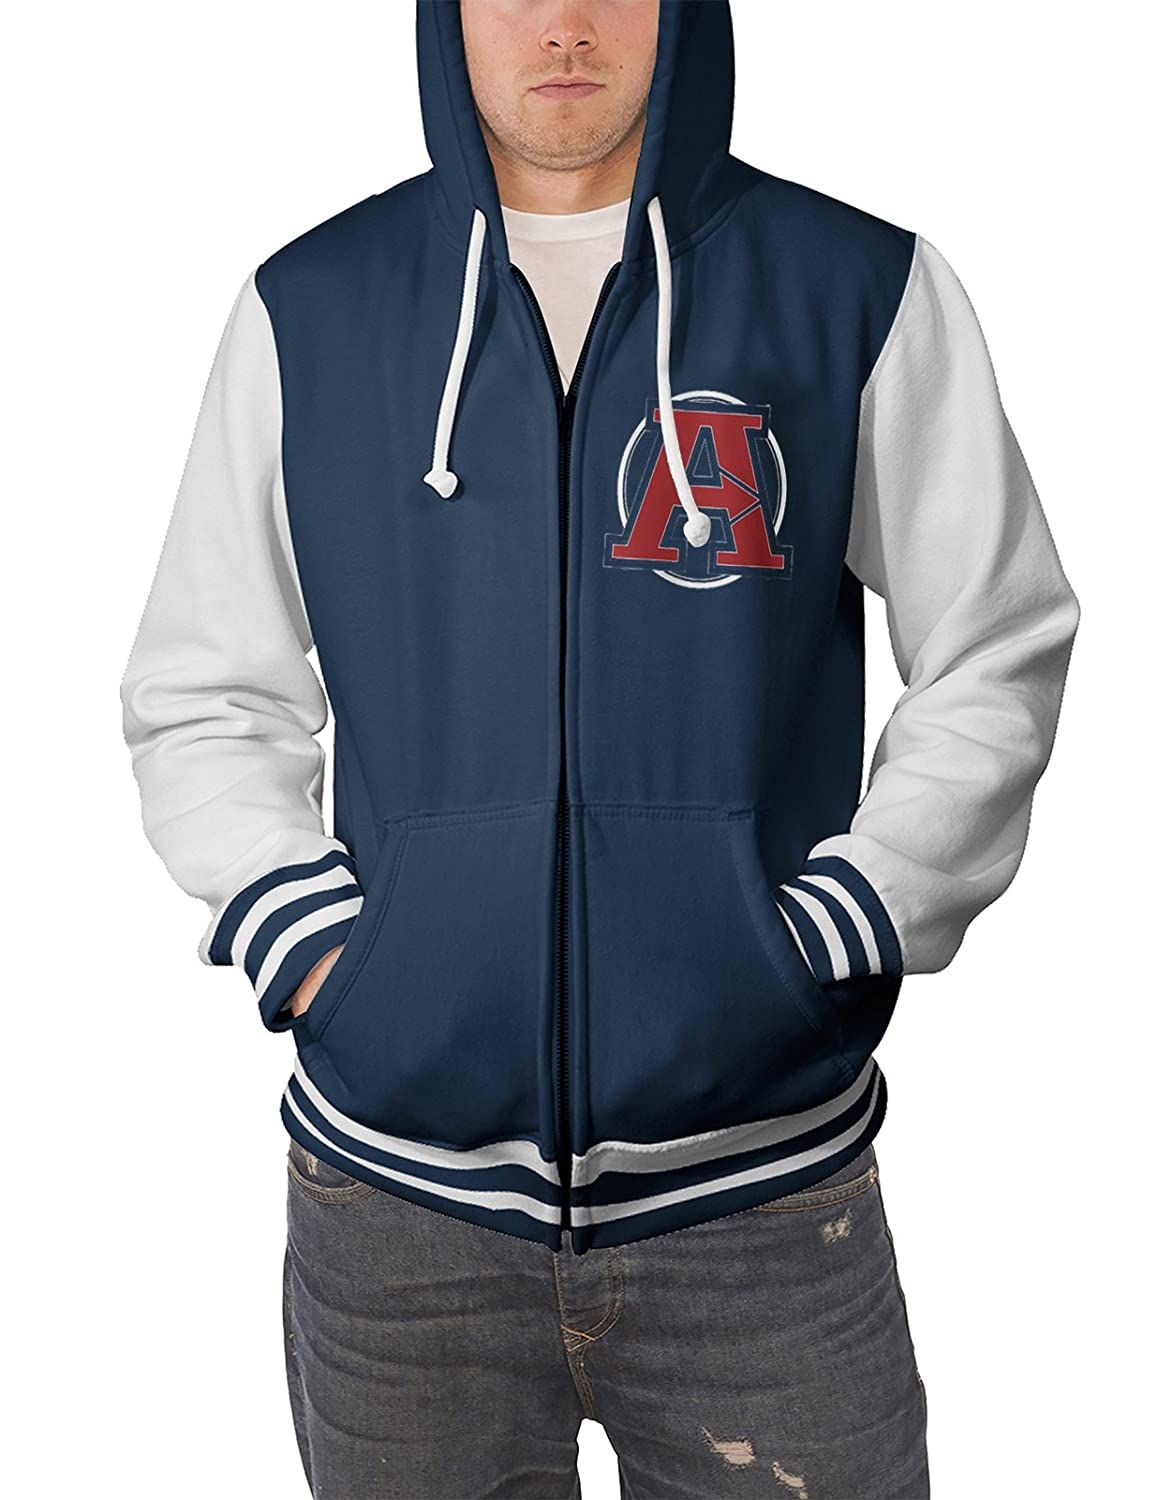 The Avengers Baseball Jacket Varsity Distressed Logo Official Mens Blue Zipped